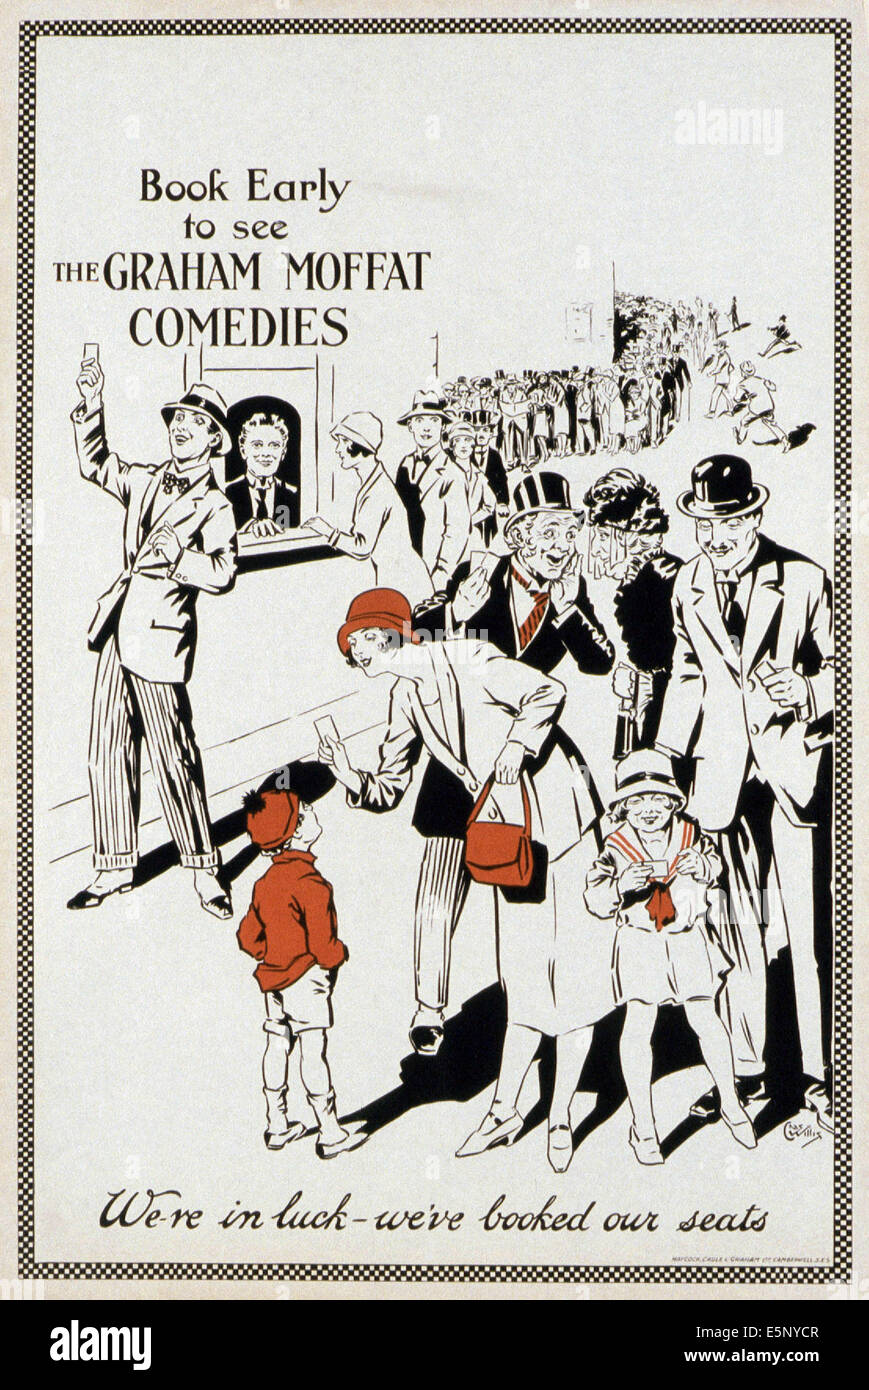 Generic poster for the films of British comedian Graham Moffat, 1930s - Stock Image